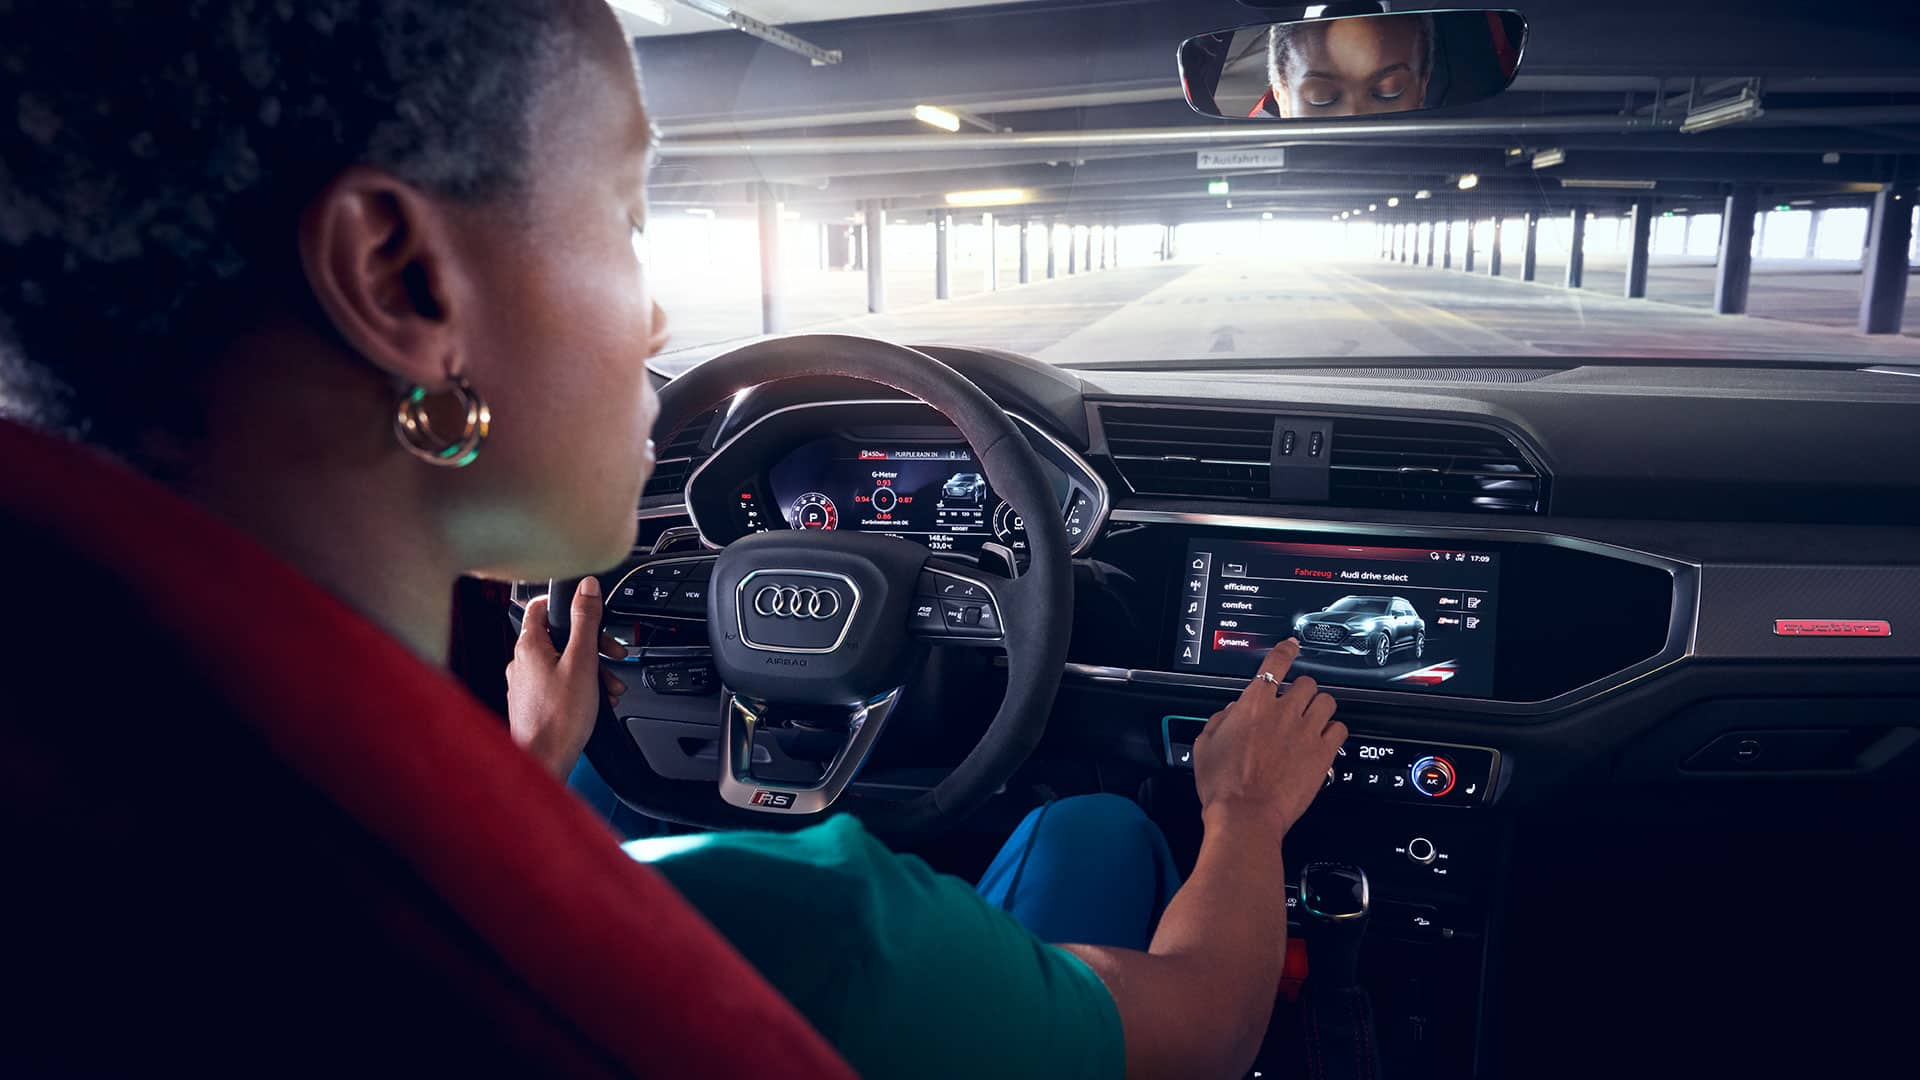 MMI-touchscreen in de Audi RS Q3